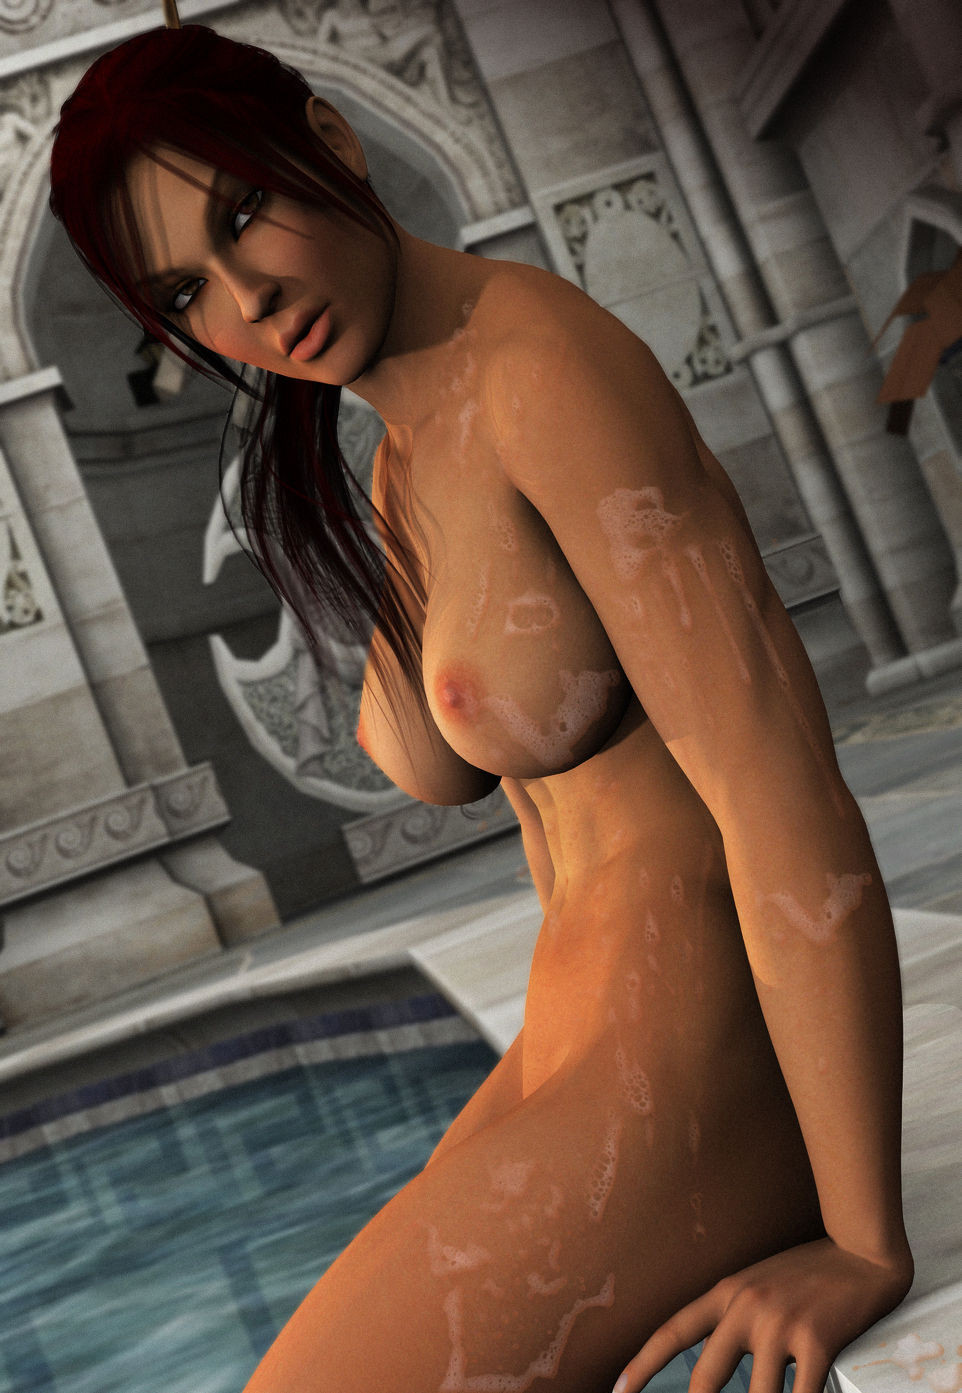 Tomb raider porn videos anime sexy vids